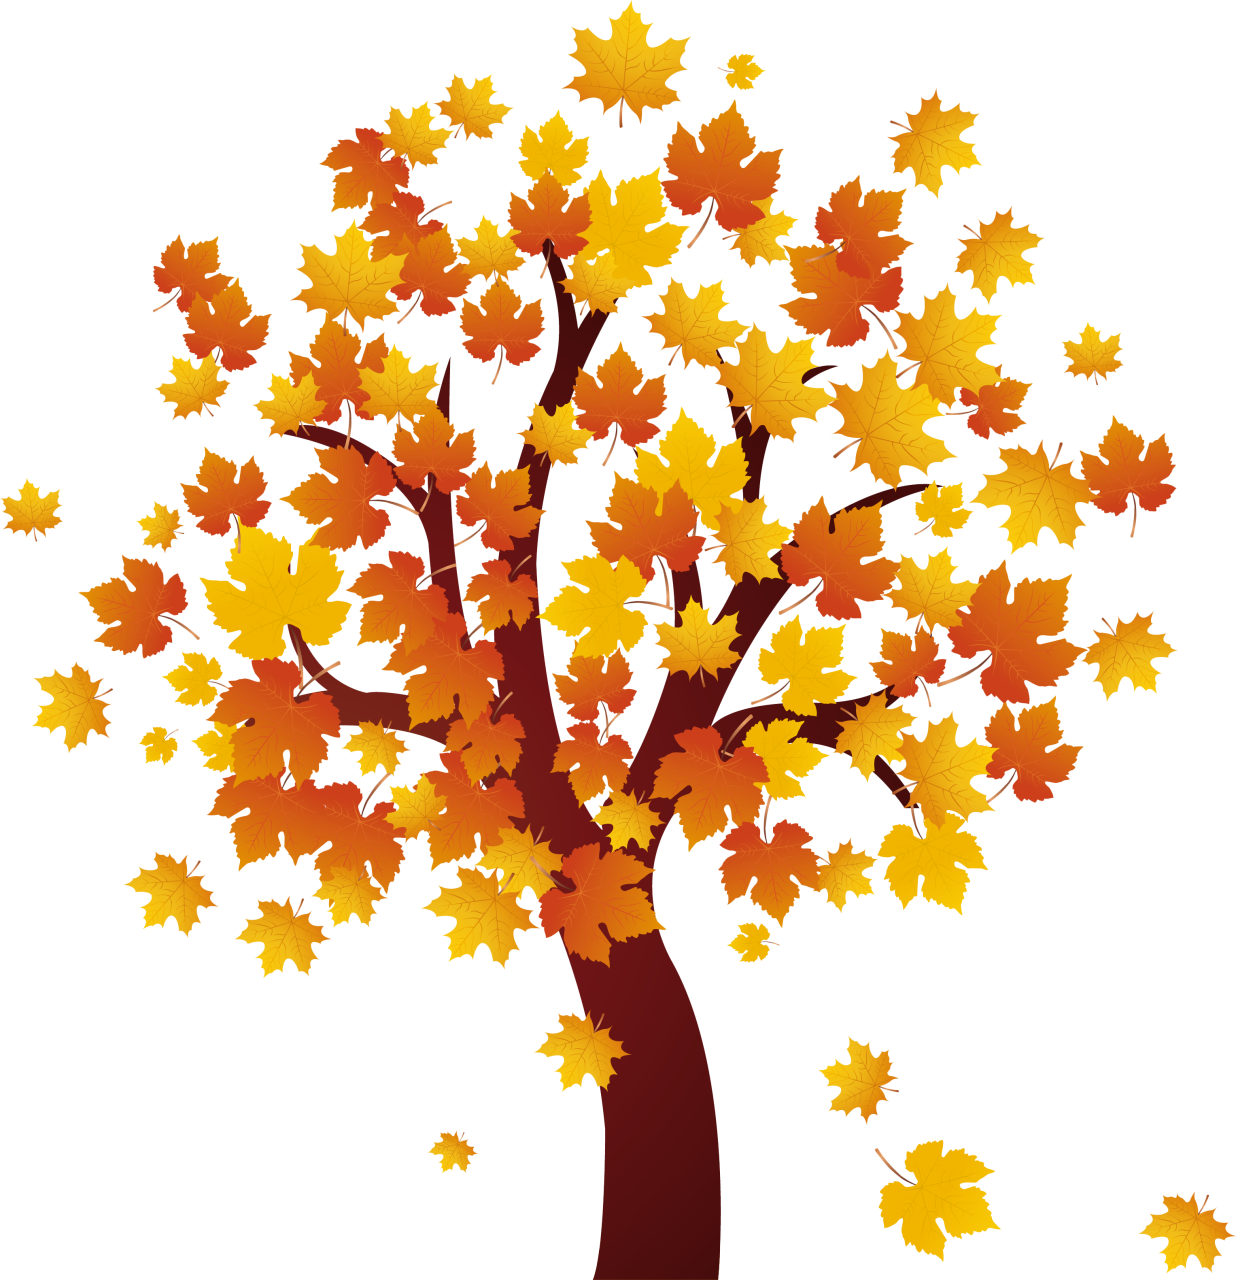 Autumn-Clipart-Autumn- .-Autumn-Clipart-Autumn- .-2